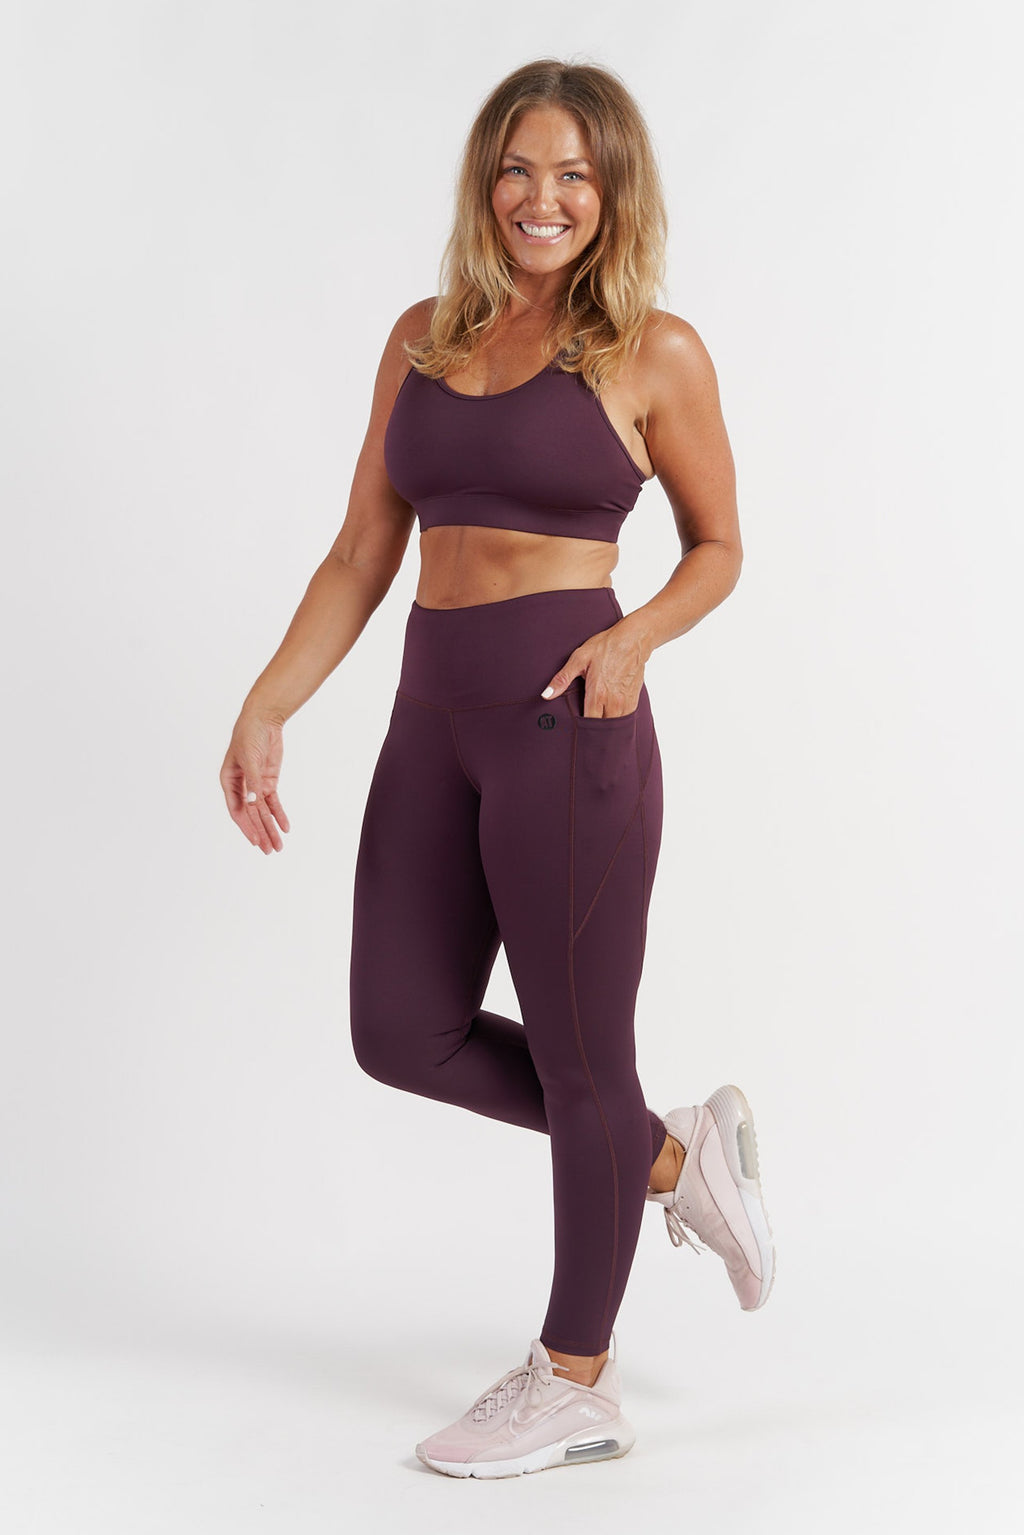 Training Pocket Full Length Tight - Wine from Active Truth USA